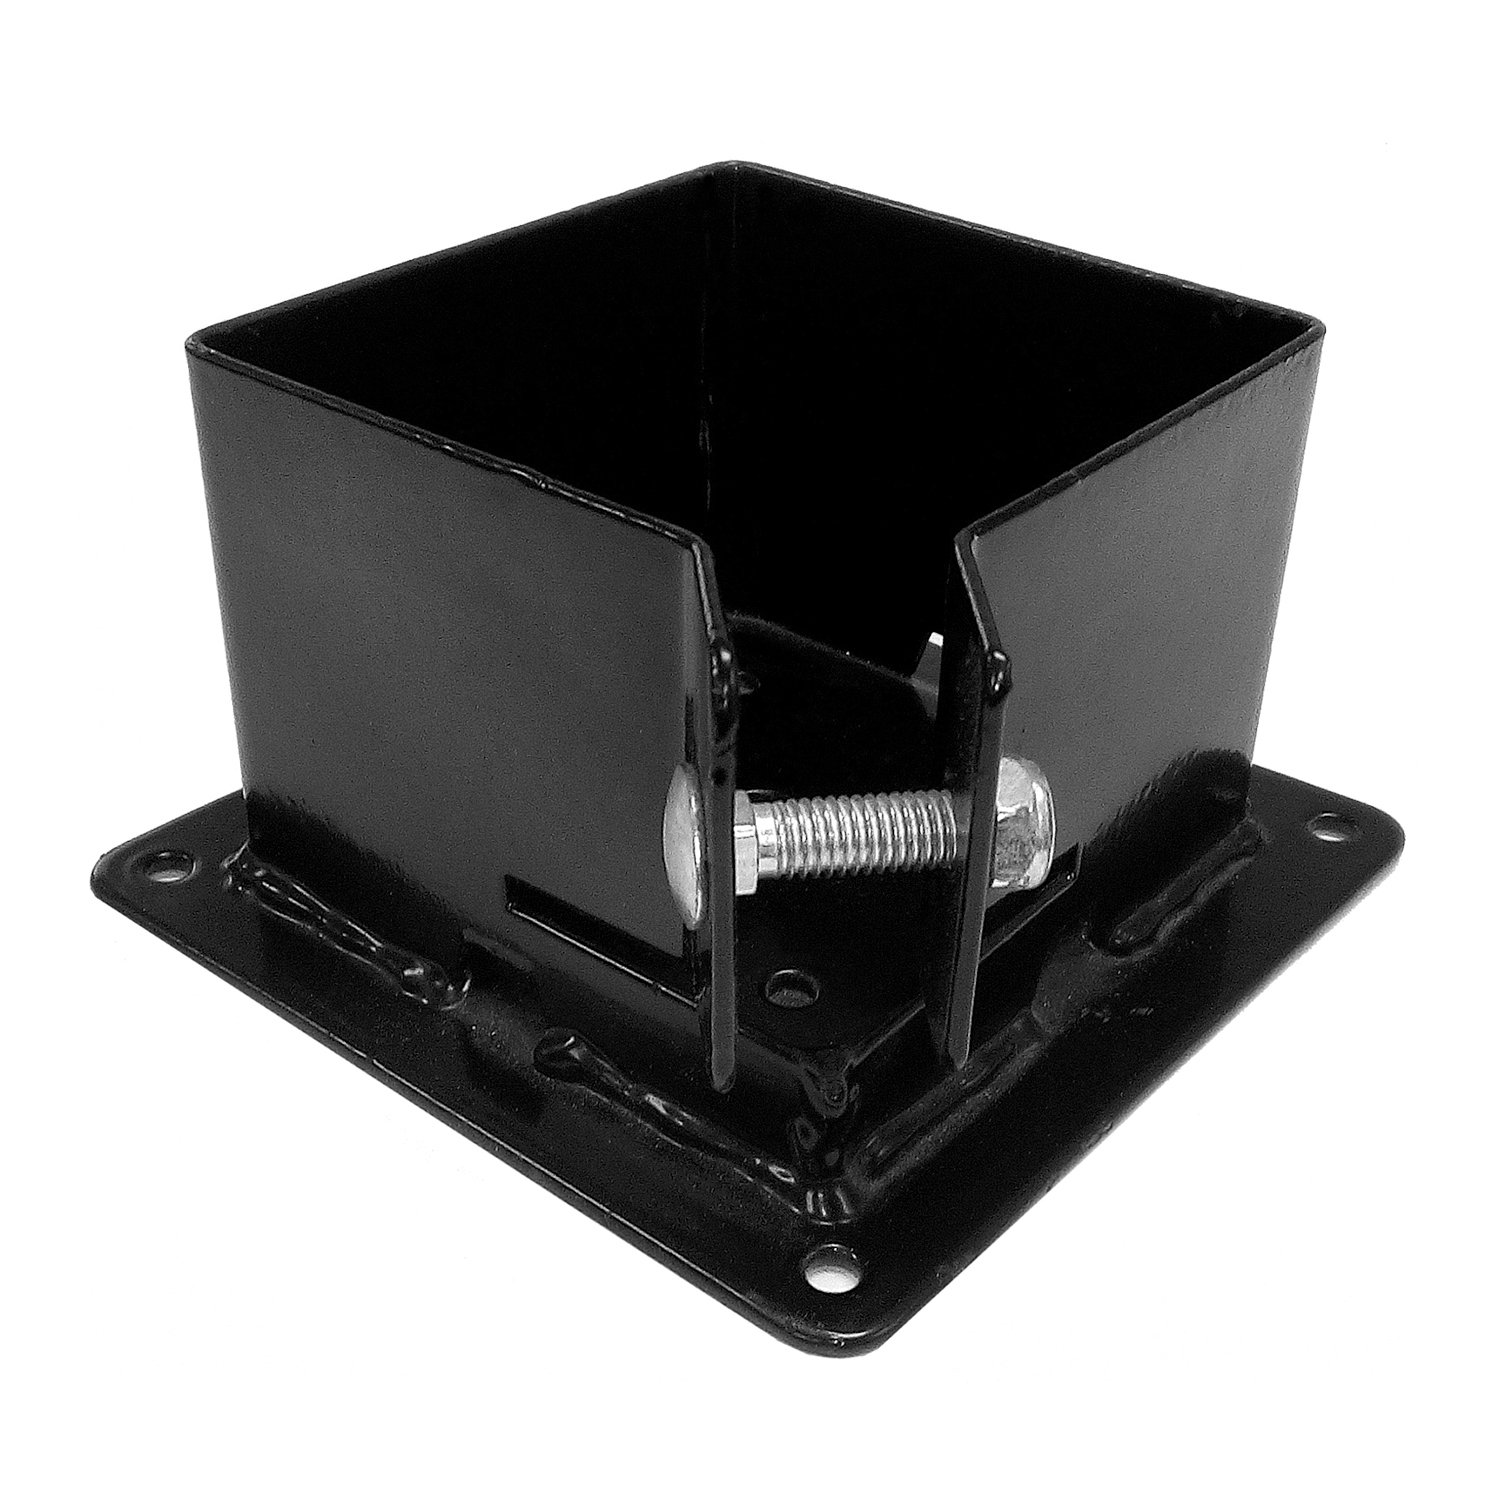 Pylex 13062 Fixbase 44 Post Anchor Bracket, Black